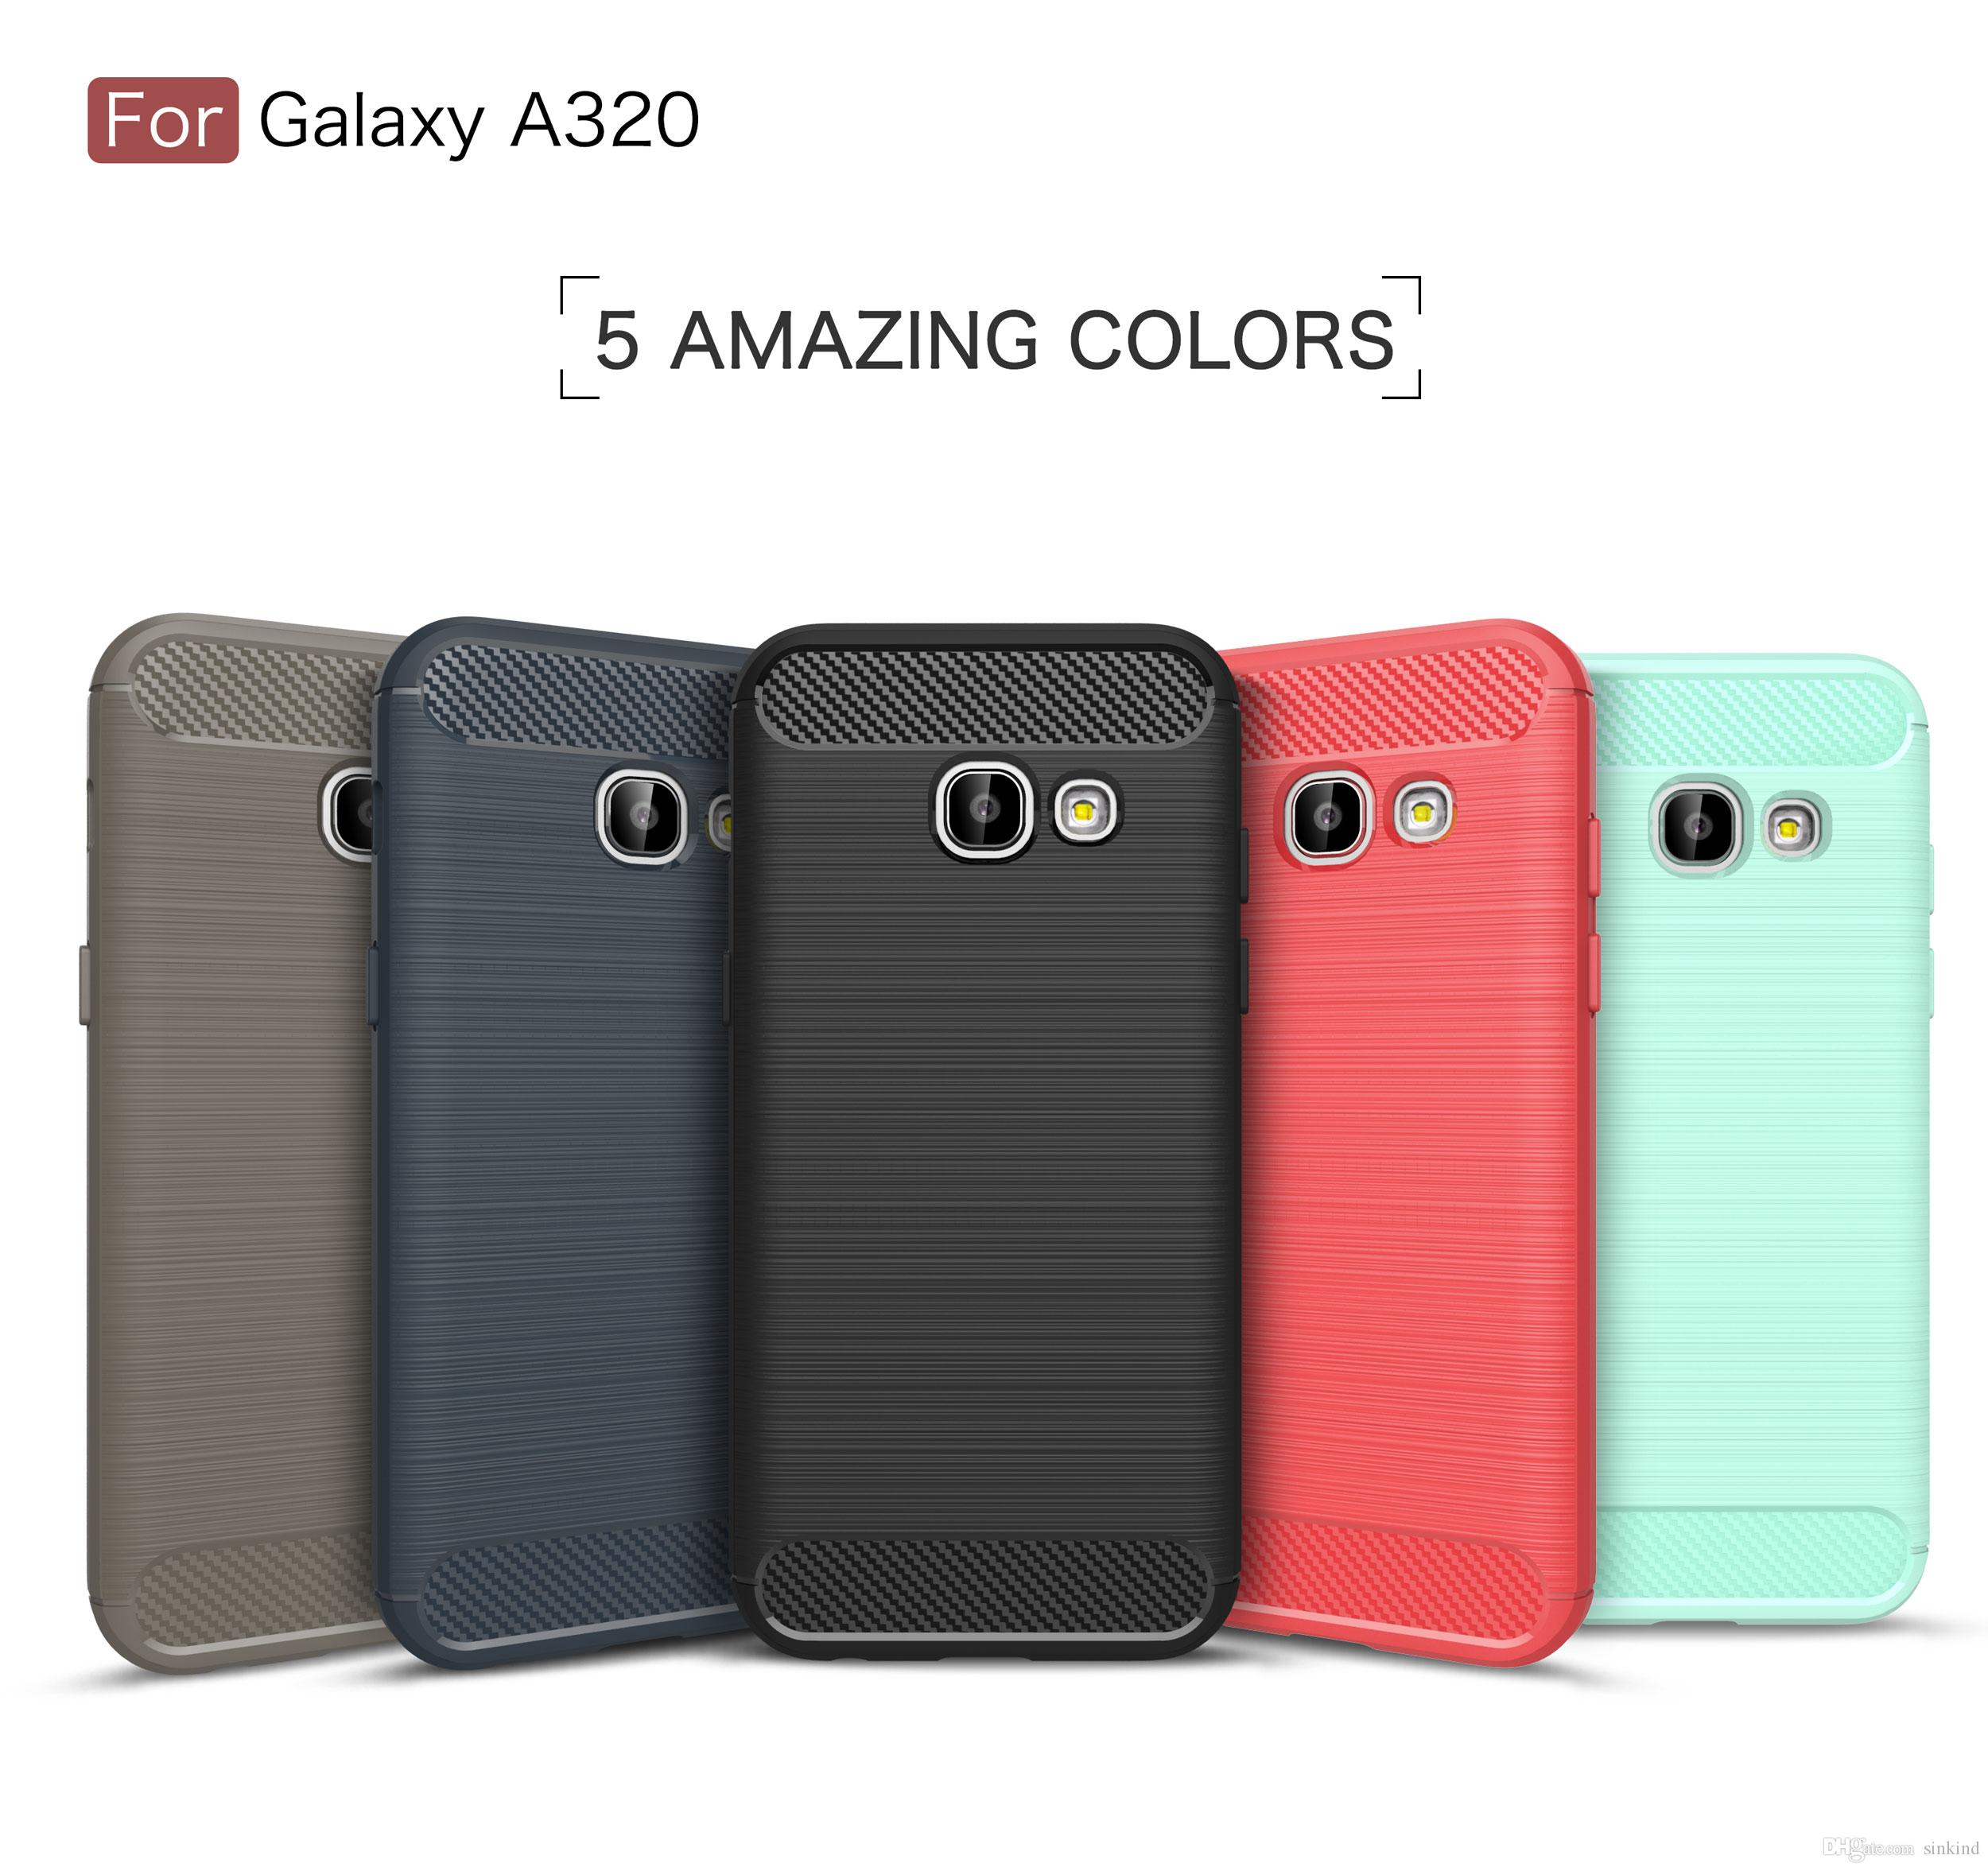 For Samsung Galaxy A3 2017 Case Tpu Cover Silicone Soft Carbon Fiber Full Cover For Galaxy A3 2017 A320 Case Design Cell Phone Case Heavy Duty Cell Phone